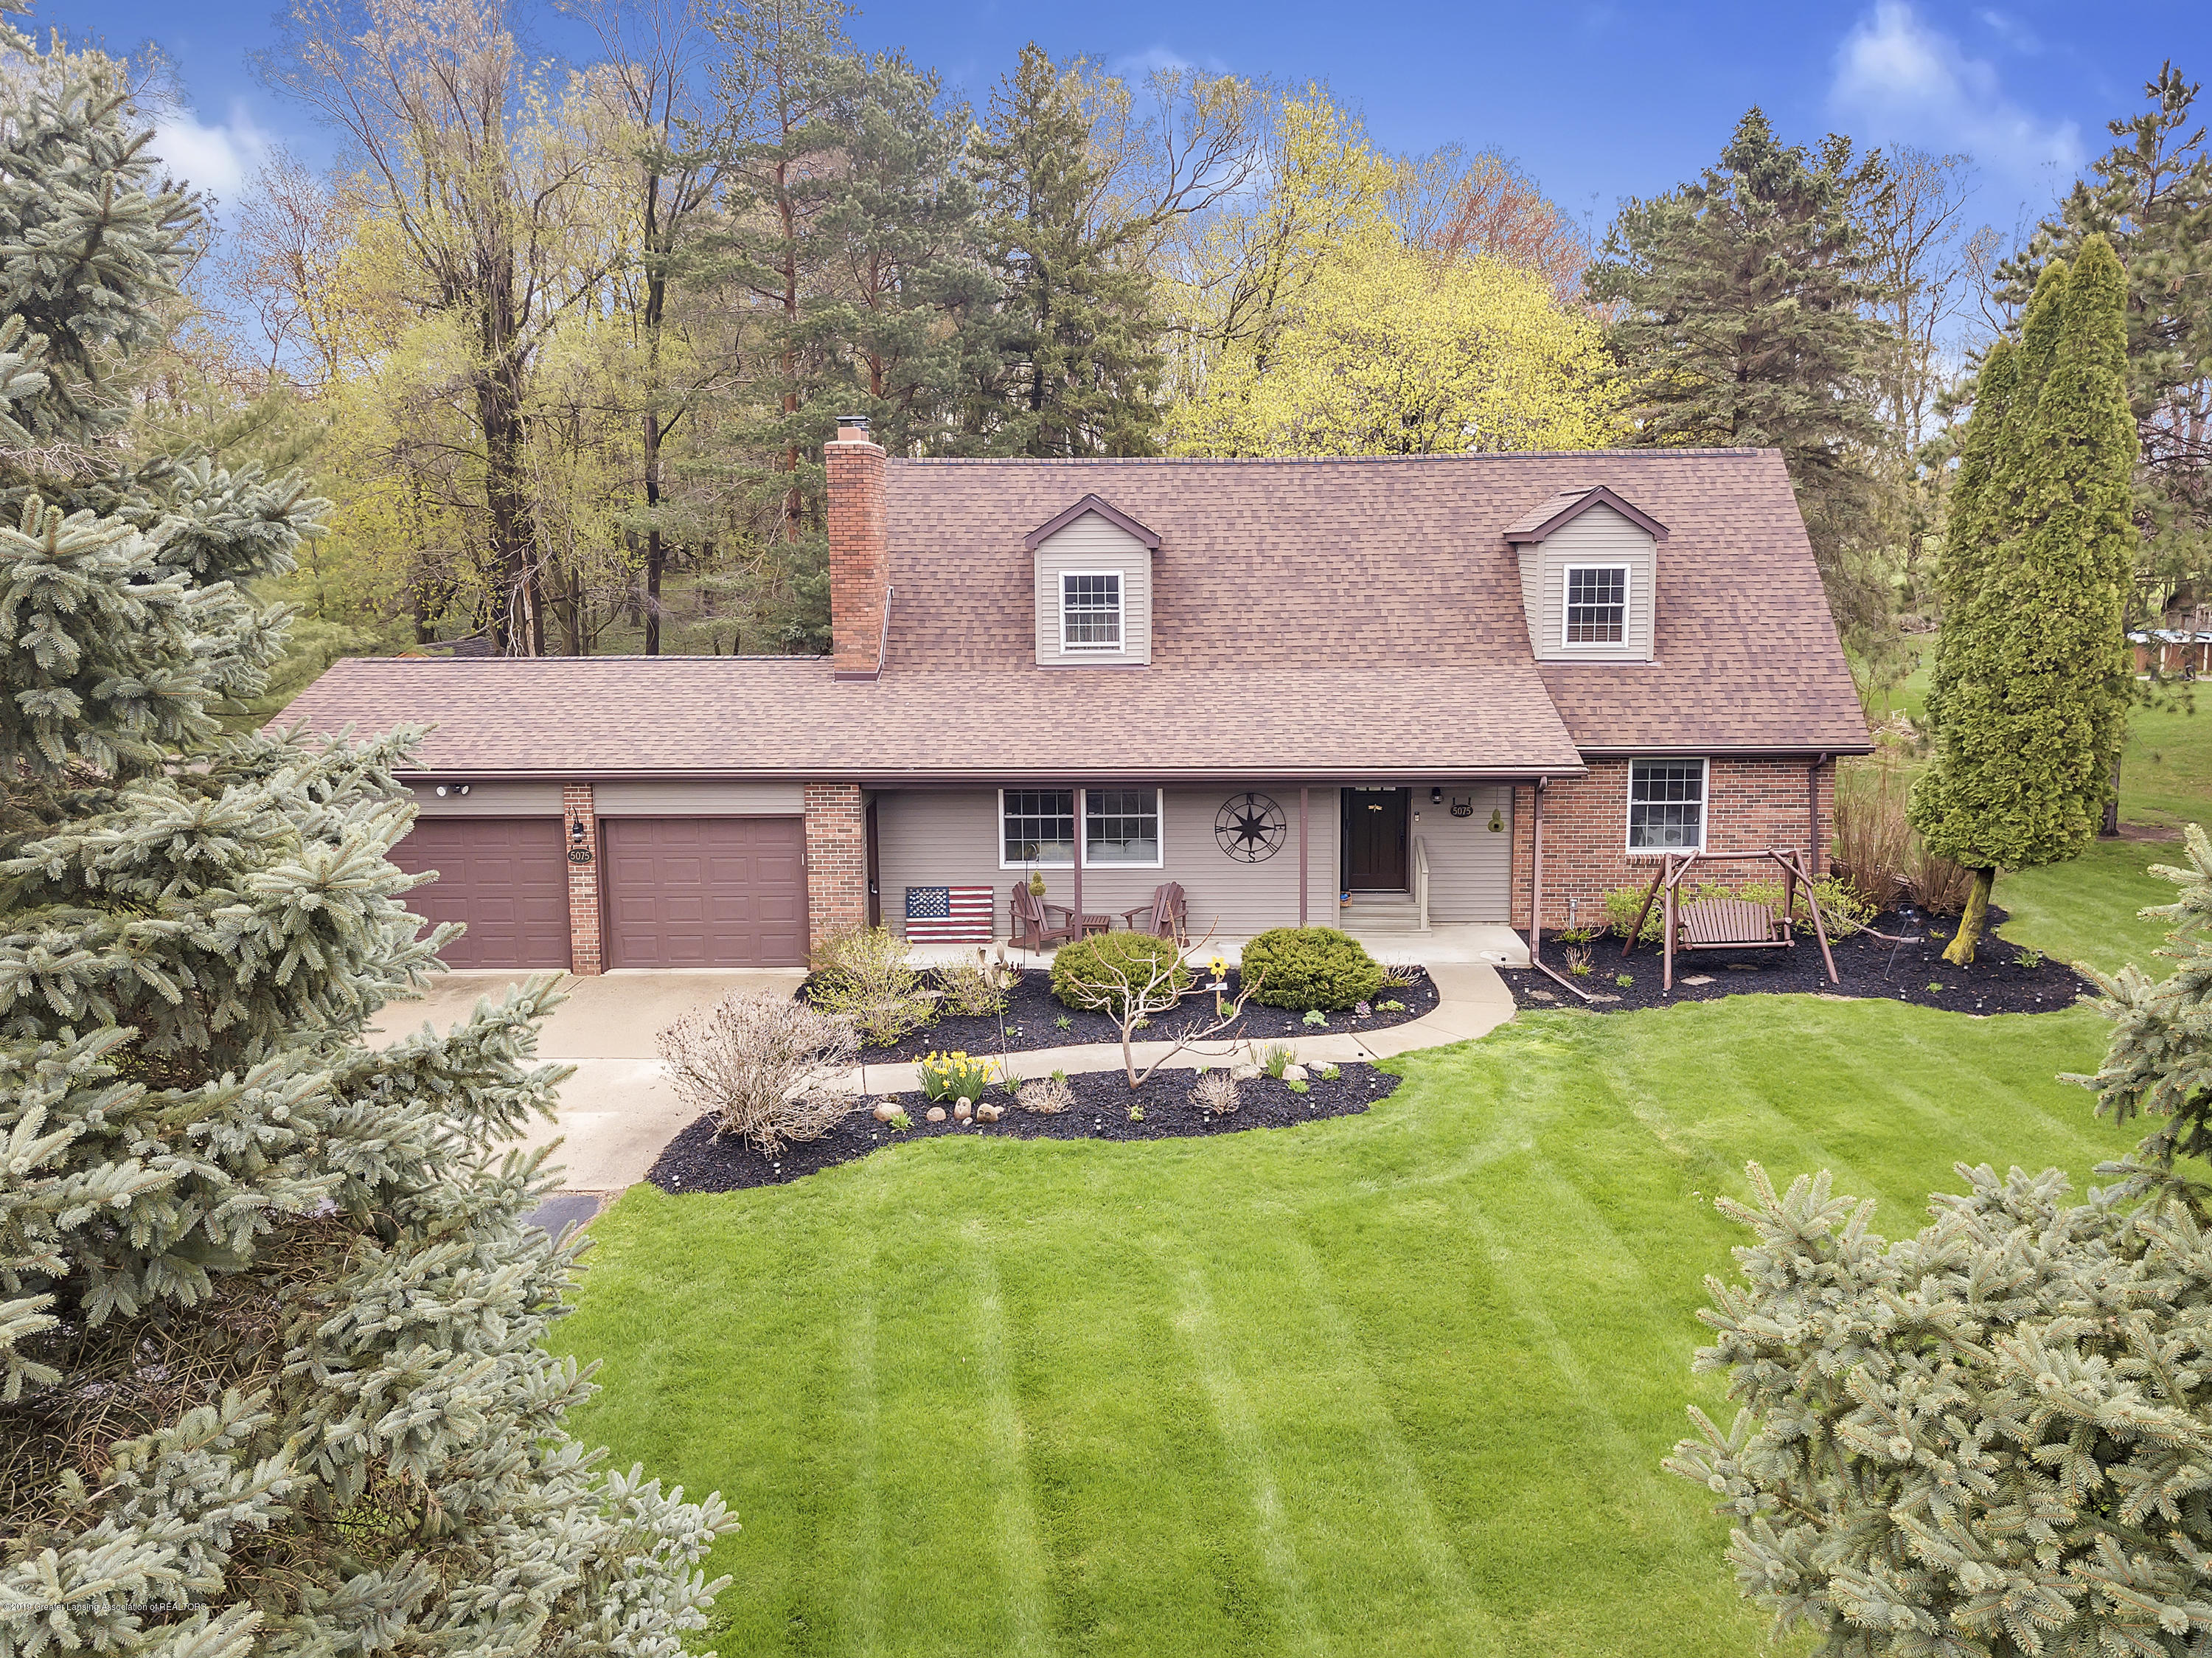 5075 Lake Dr - 5075-Lake-Dr-Owosso-windowstill-3 - 3